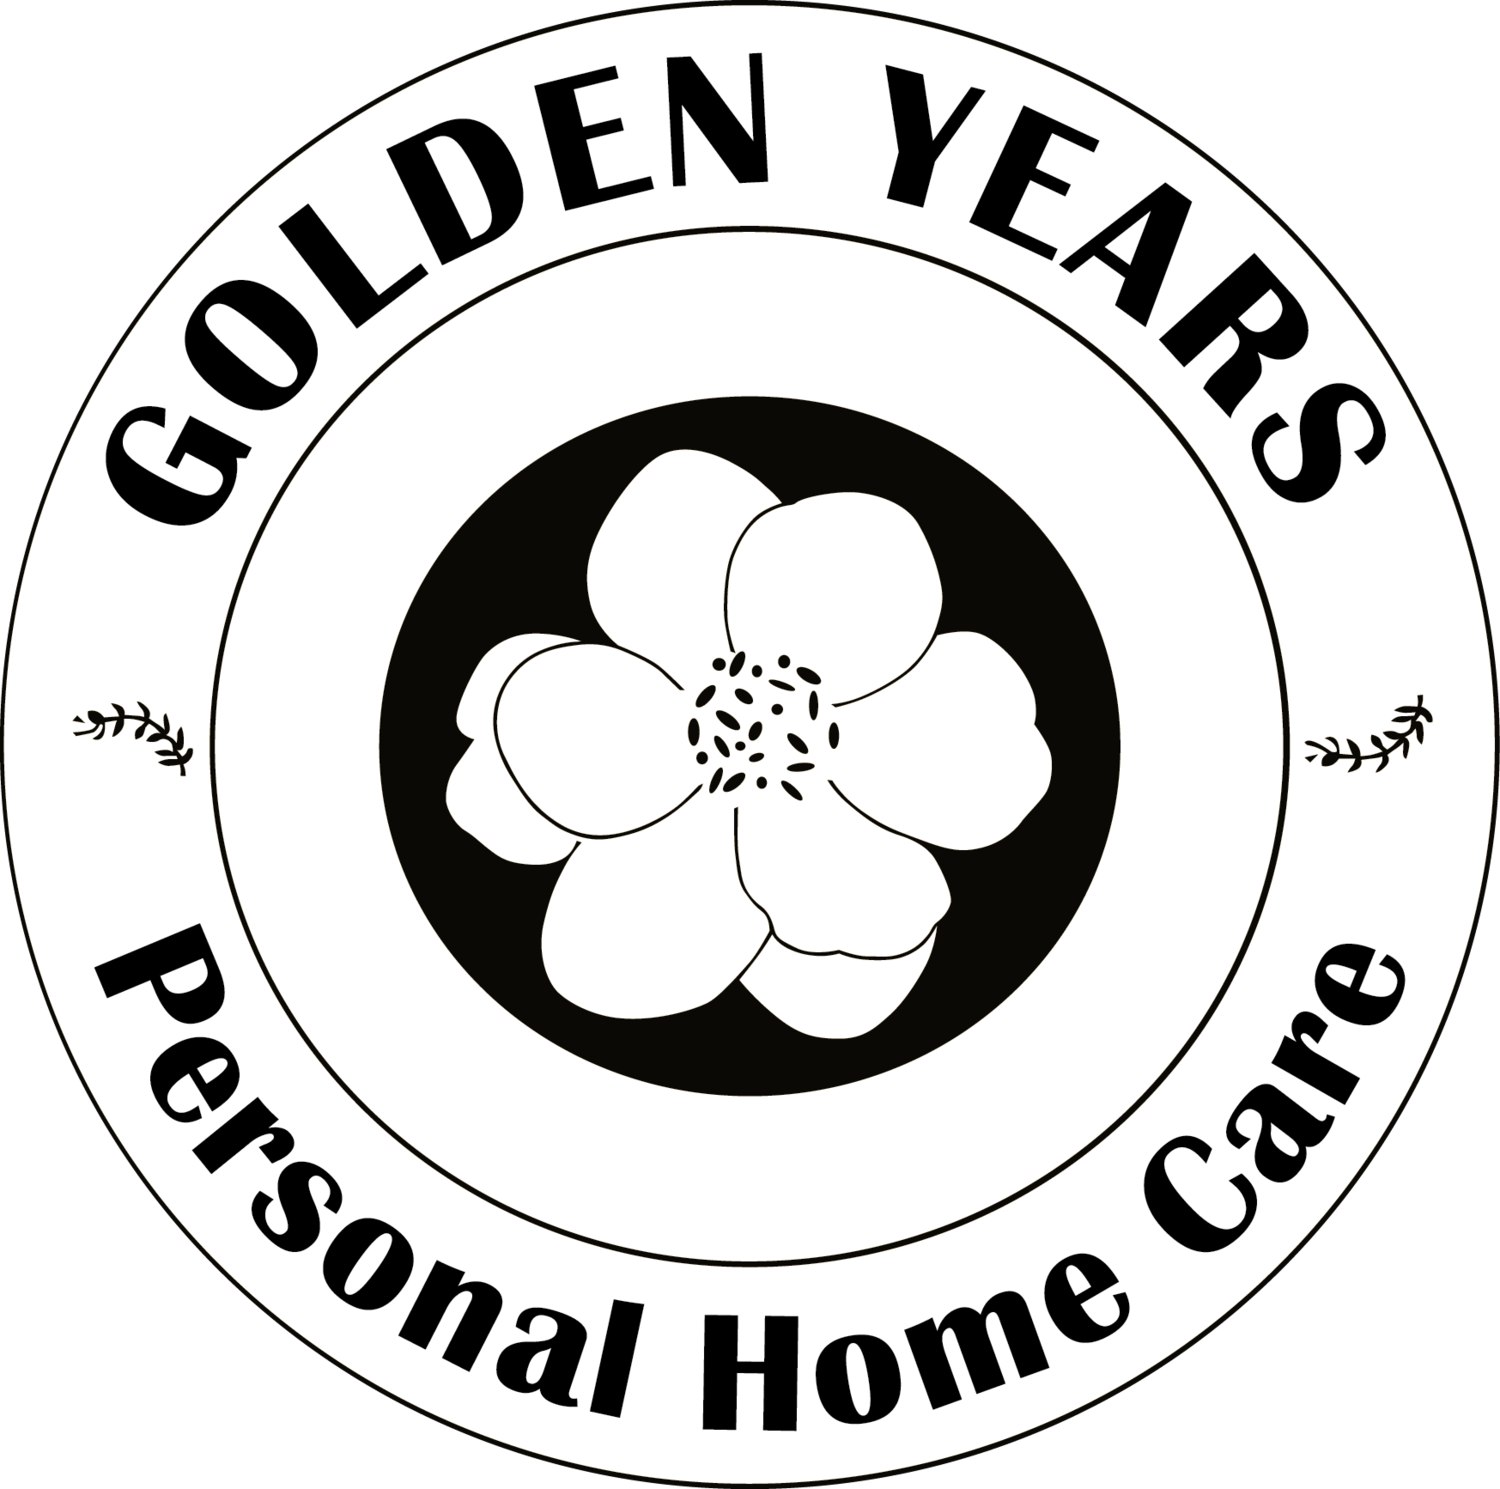 Missions clipart common goal. Mission golden years